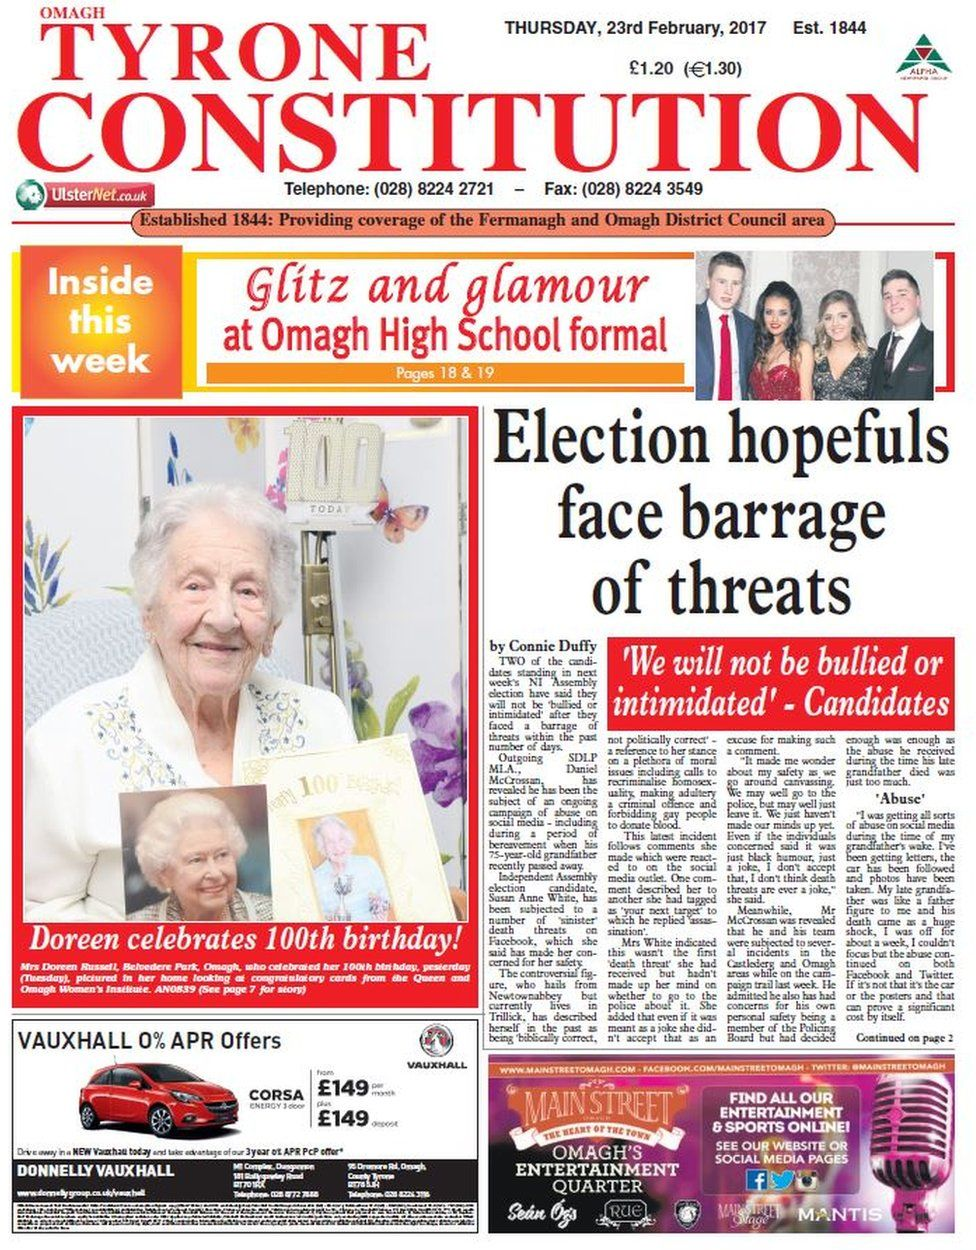 Tyrone Constitution front page